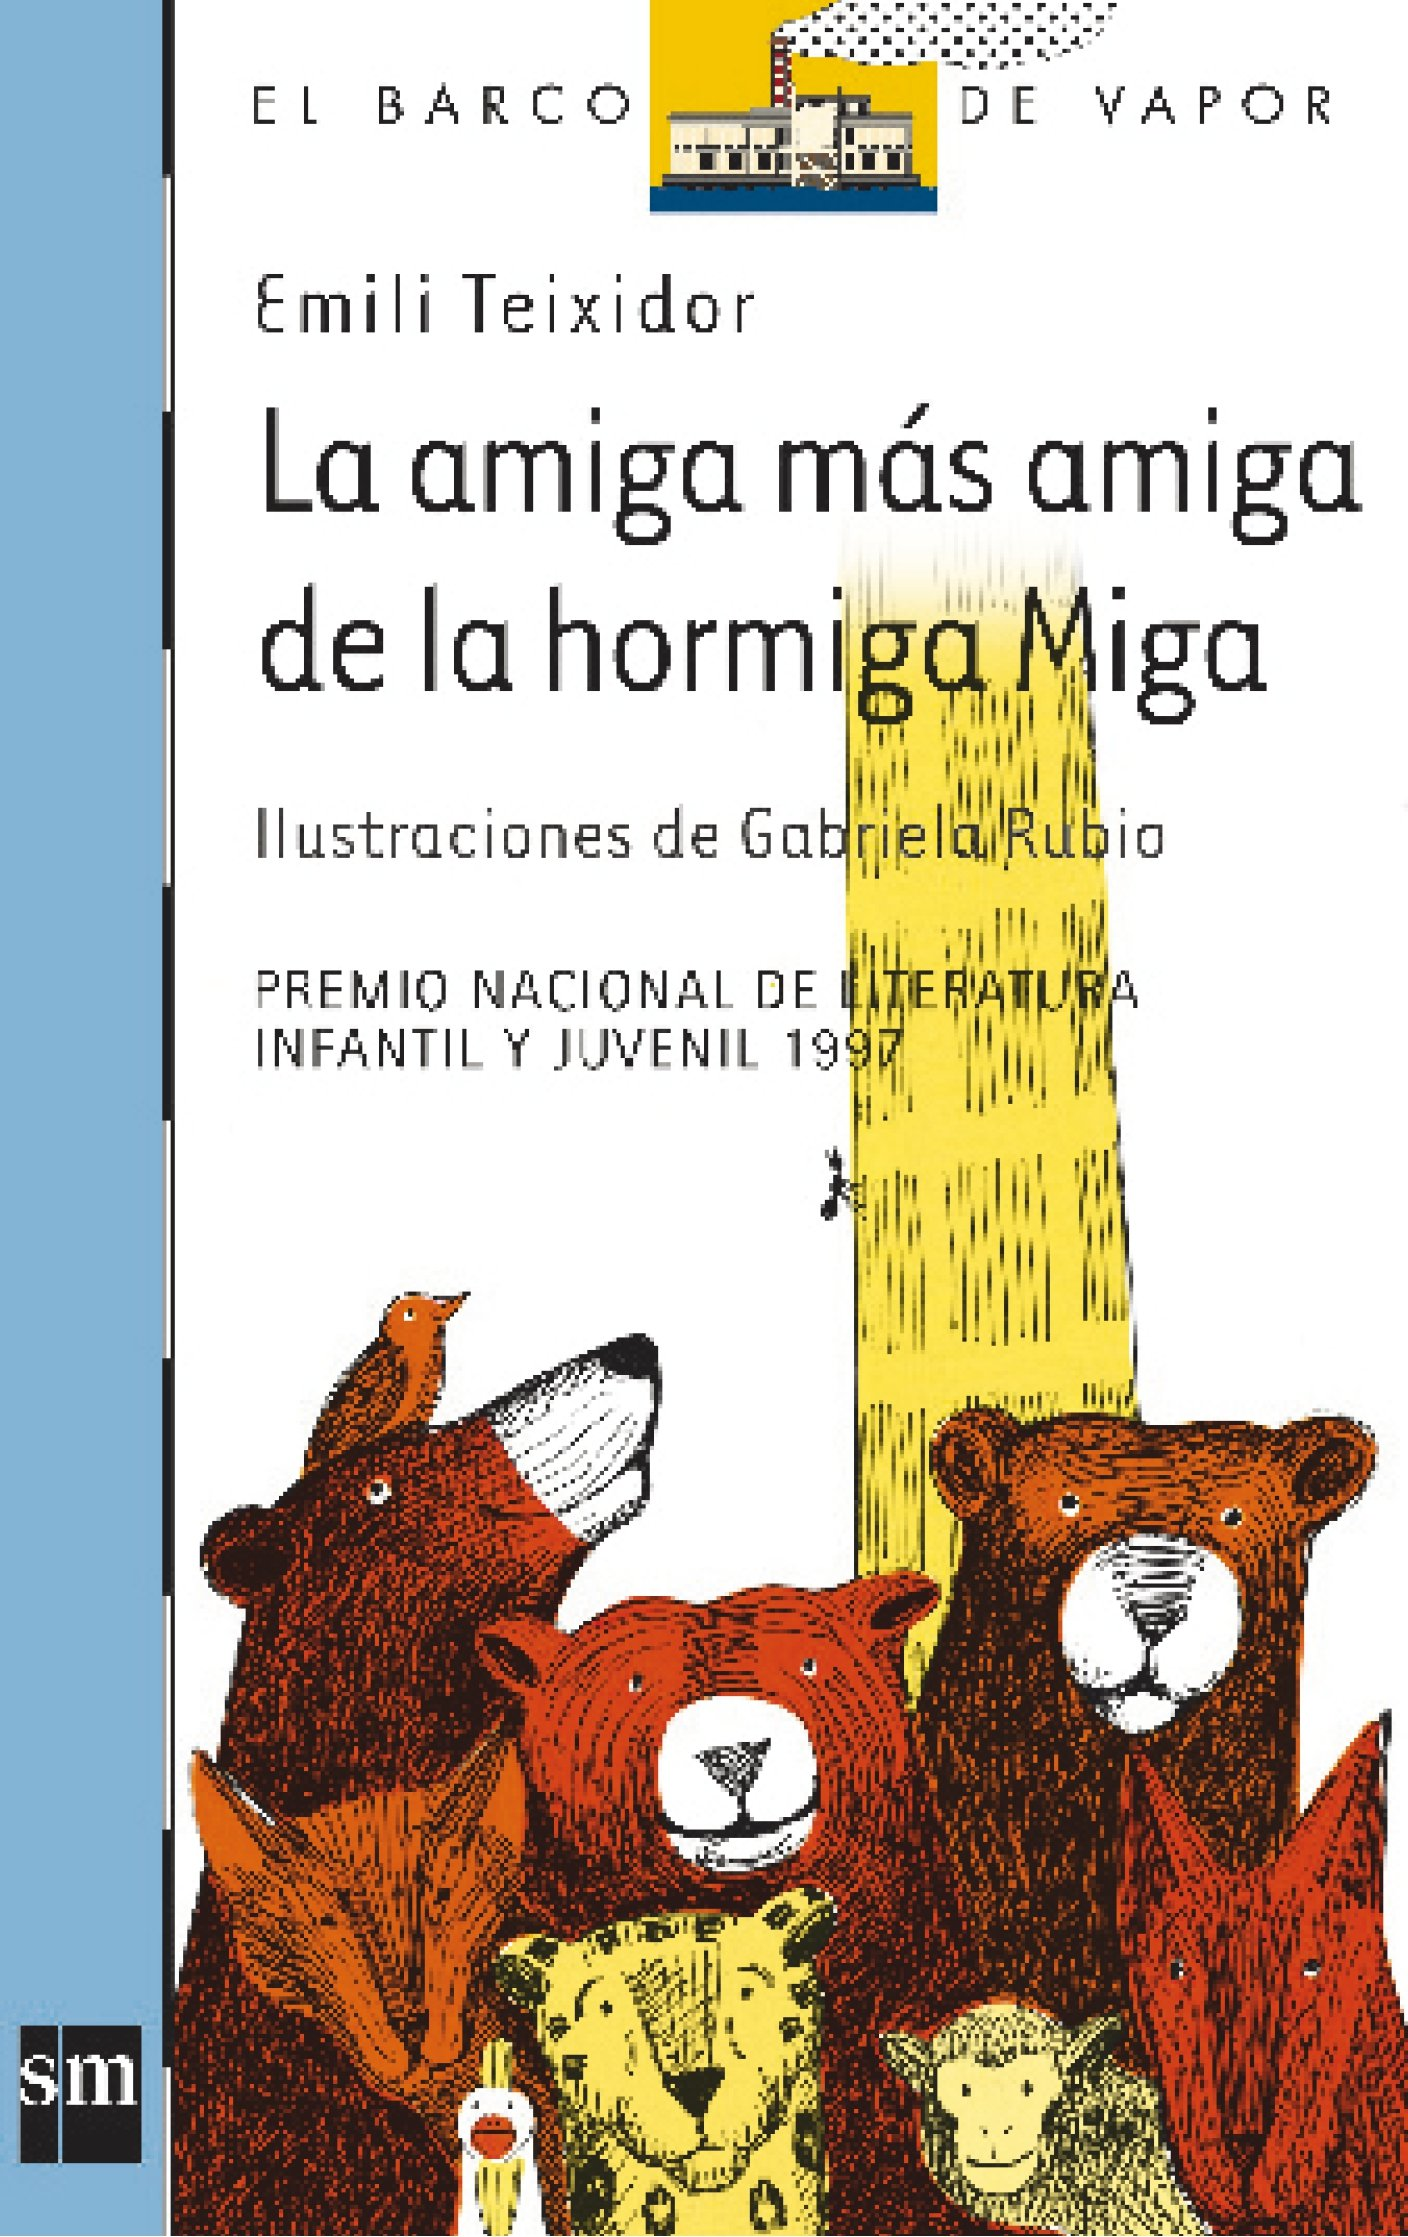 La amiga mas amiga de la hormiga miga / The most Friendly Friend of Ant Miga (El barco de vapor / The Steamboat) (Spanish Edition): Emili Teixidor, ...